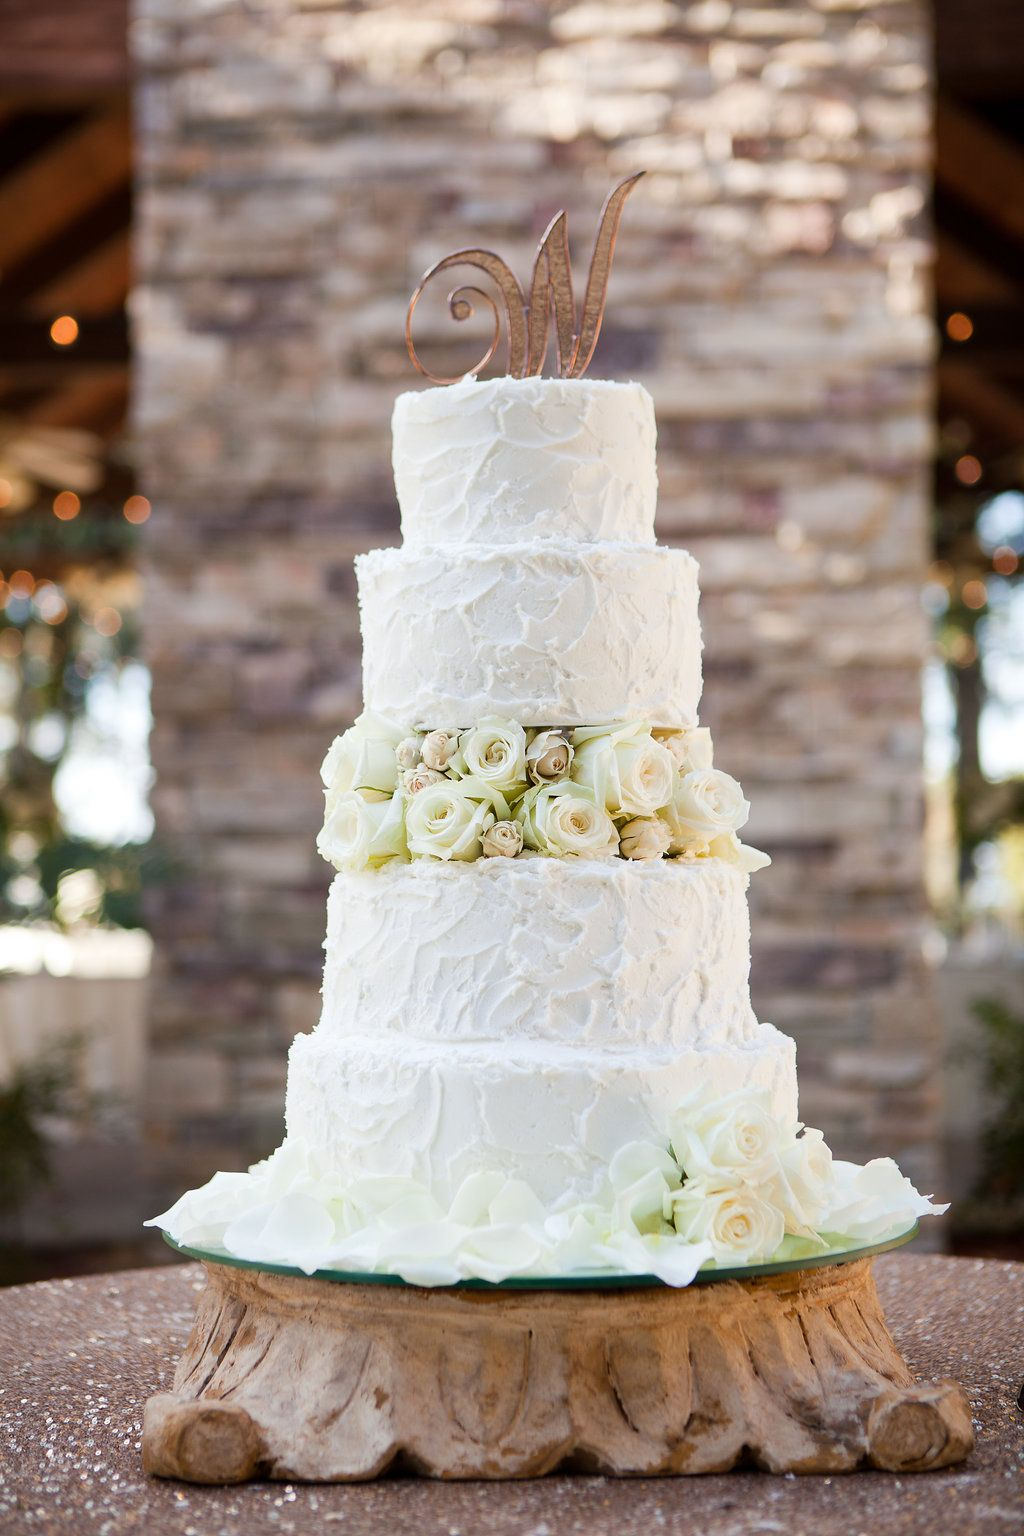 Wedding Planner: Mary Me Photographer: Kim Box Photography- Josh Moates Cake-Vickie Kyser